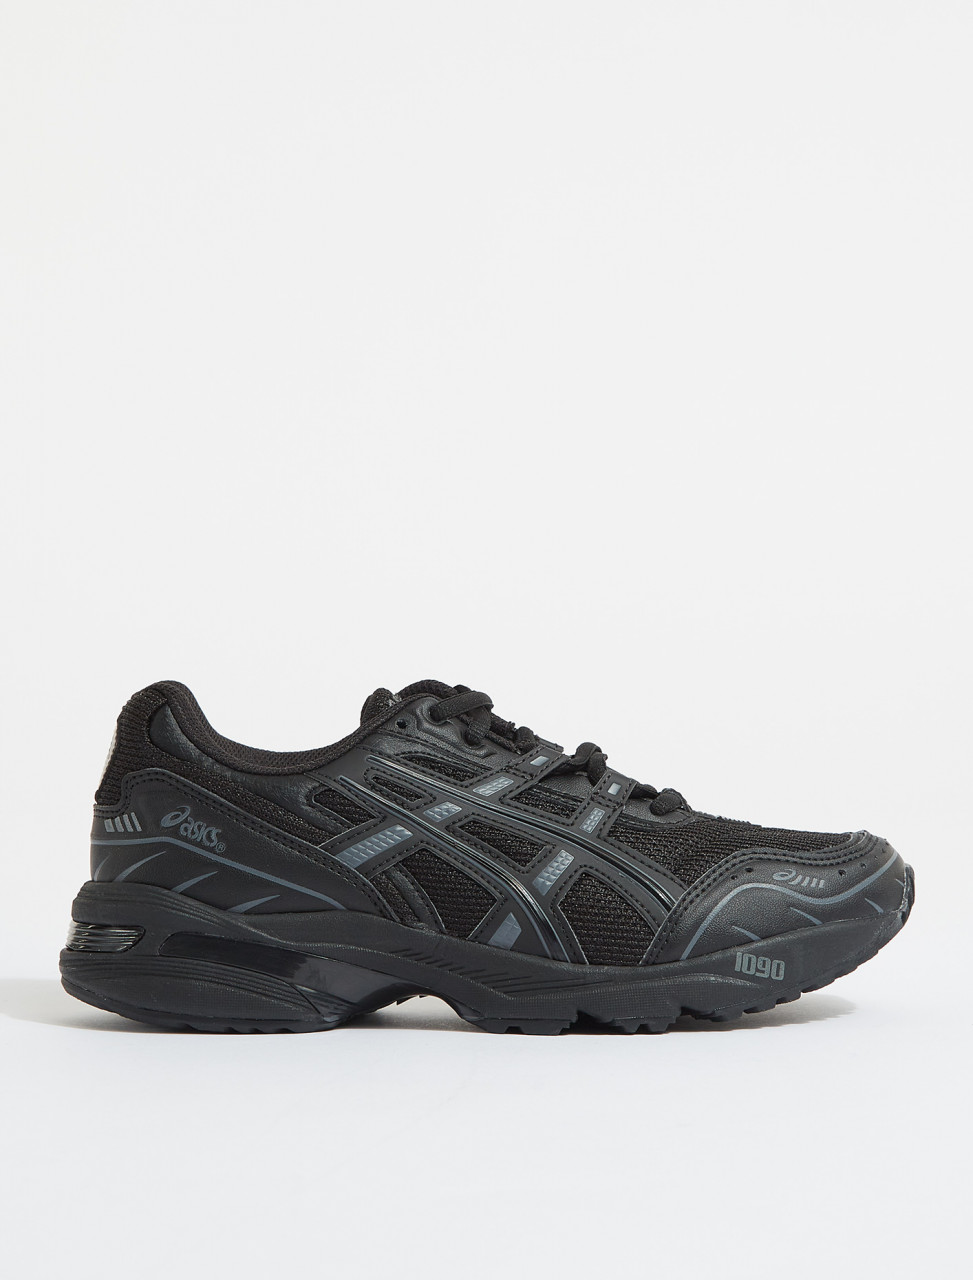 1021A275-001 ASICS GEL 1090 BLACK